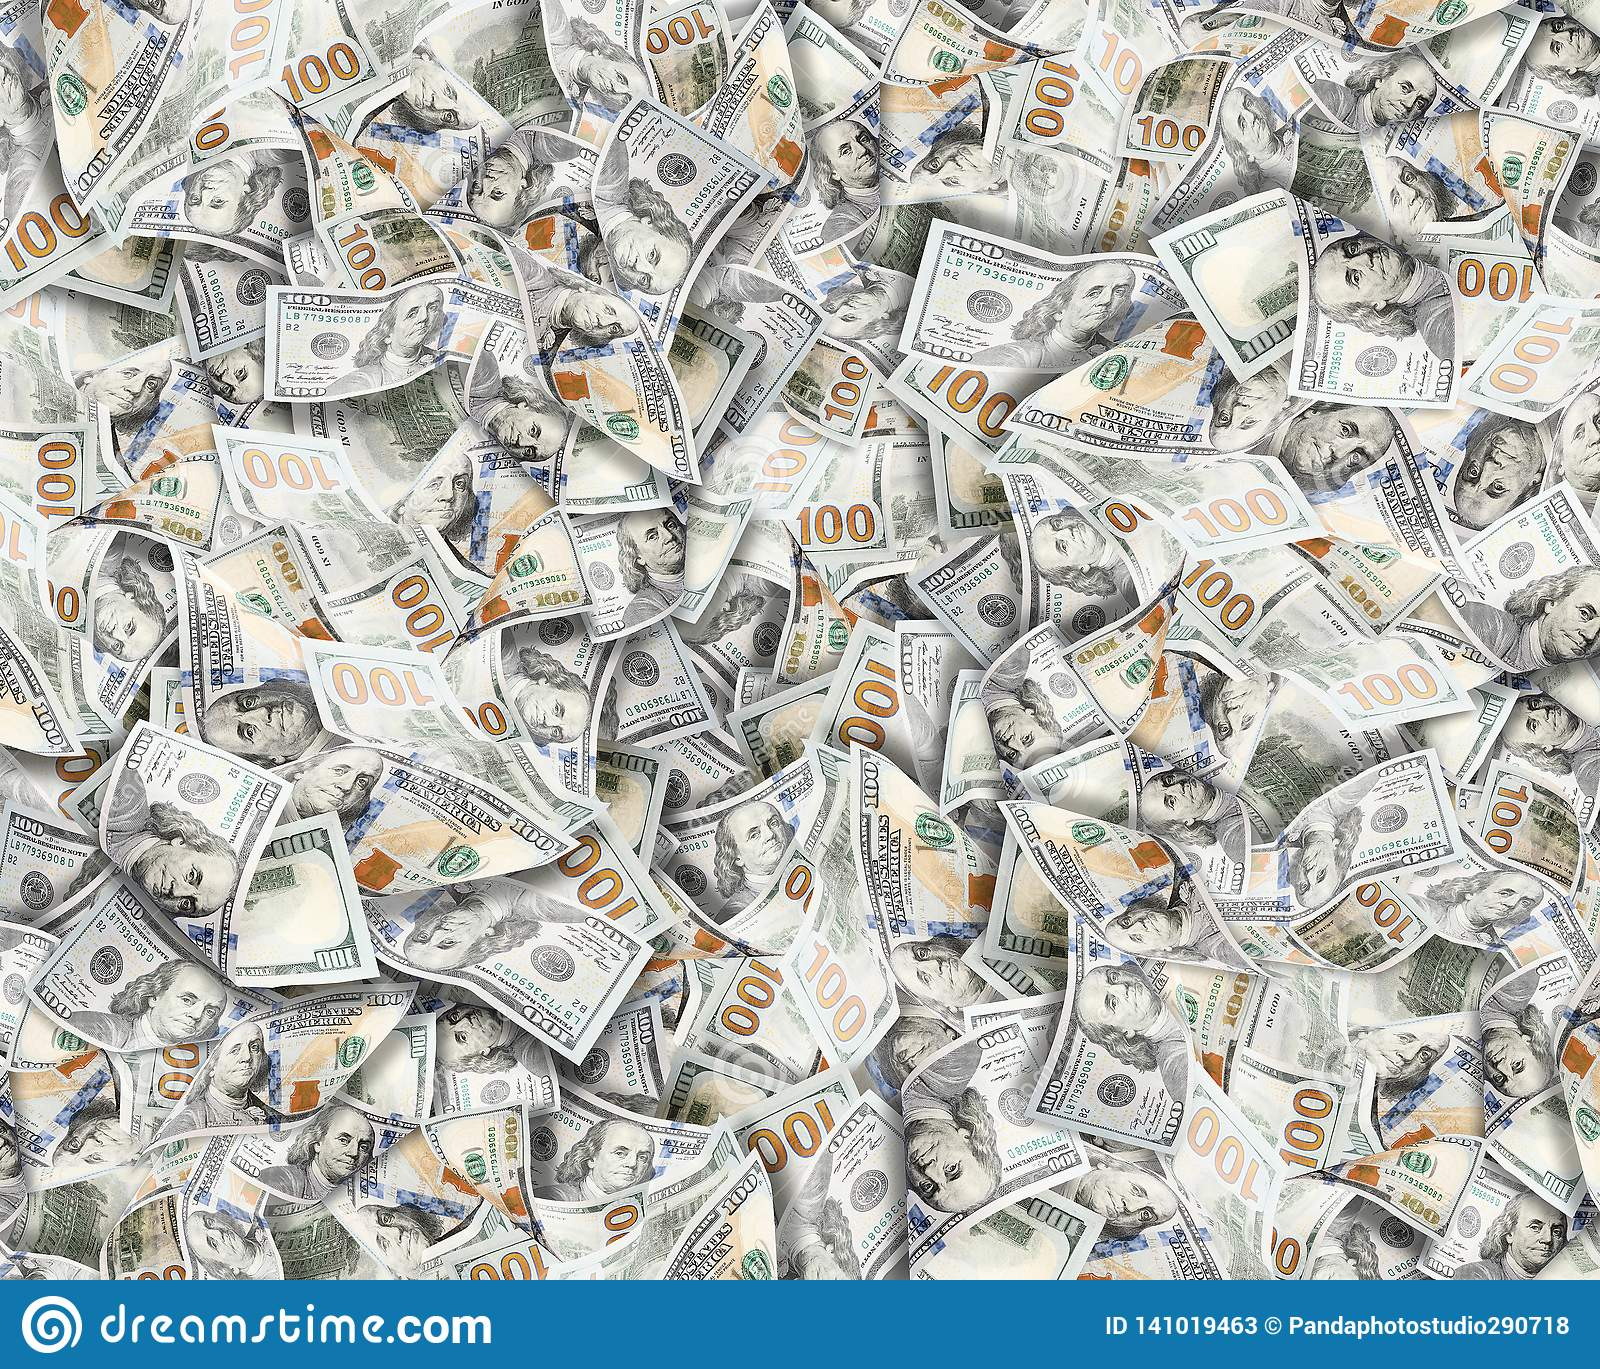 A lot of dollars.Highly detailed picture of American USA money